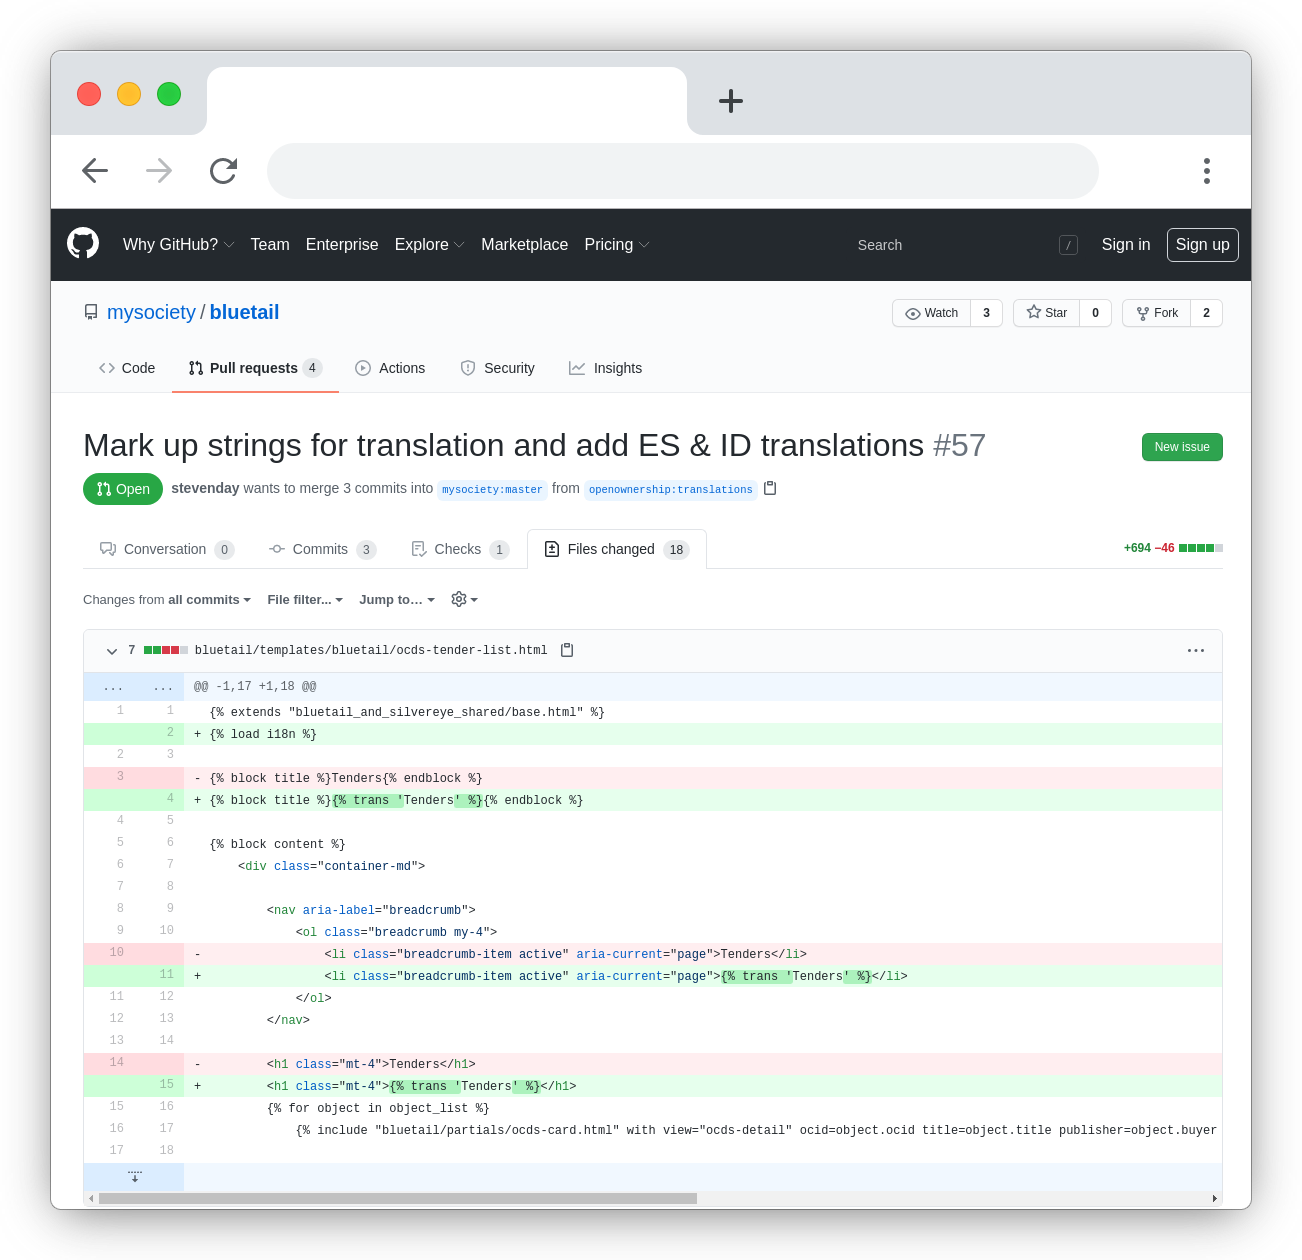 Screenshot of a GitHub pull request we've made to the Bluetail codebase